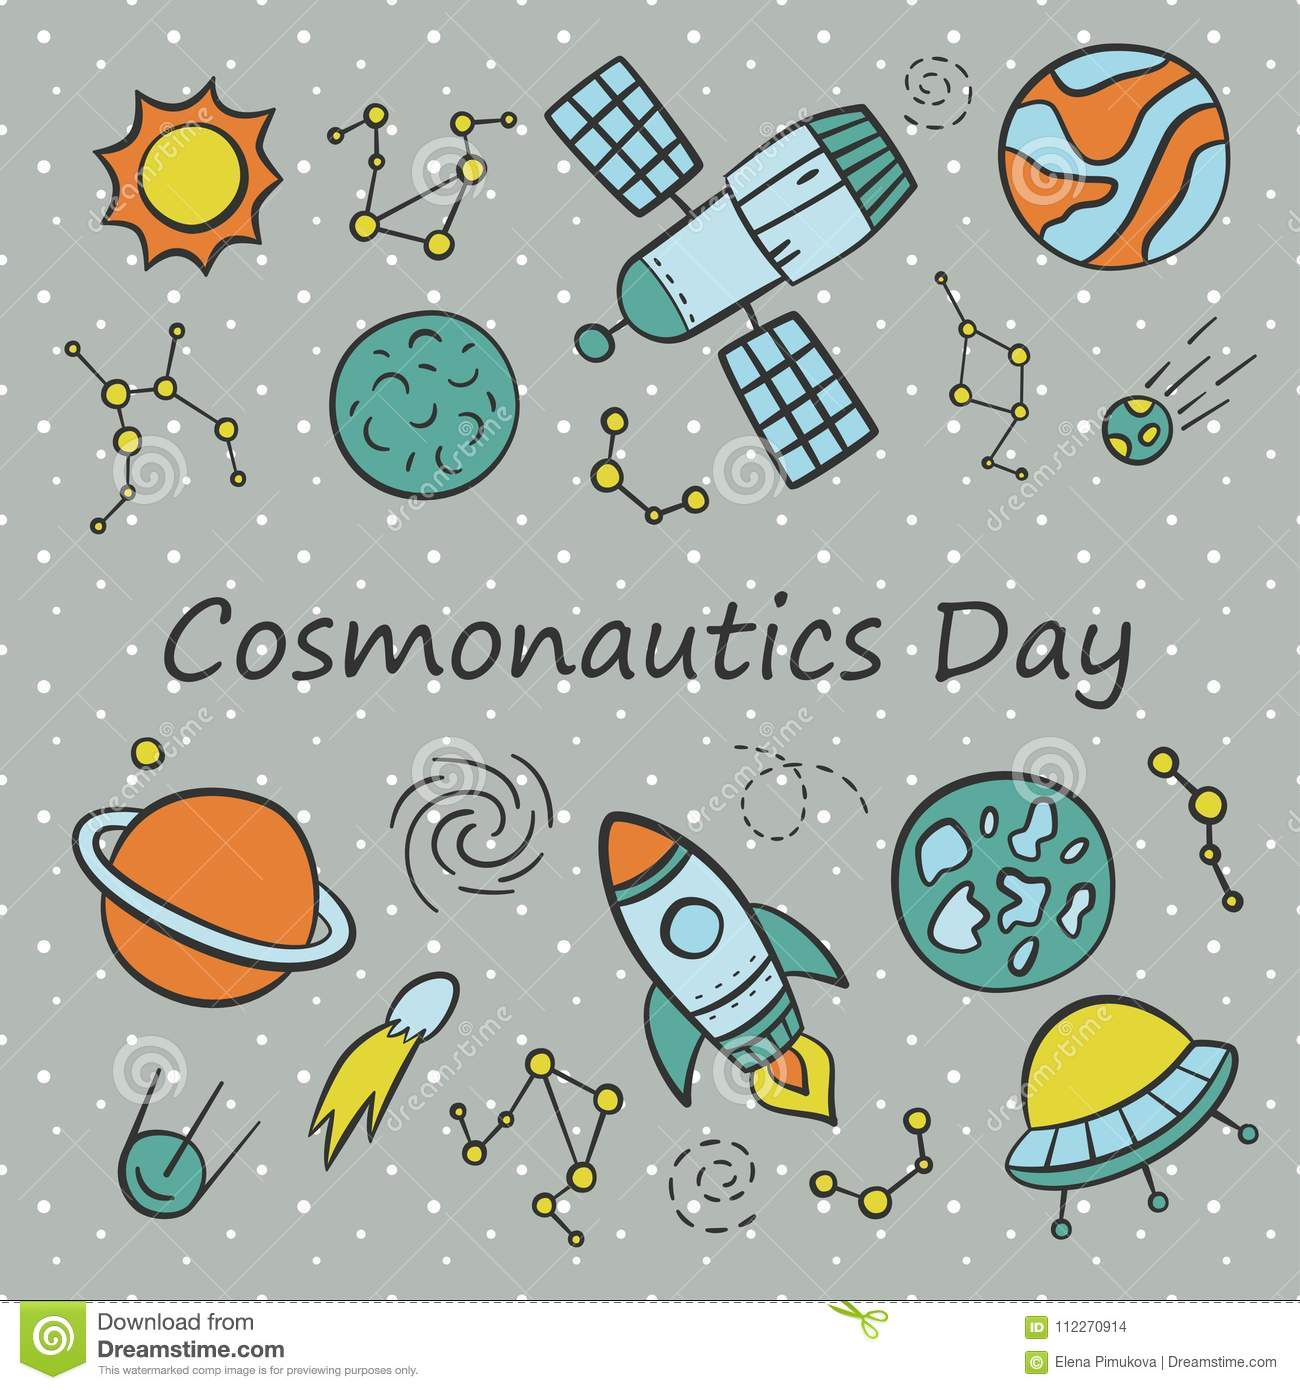 Cosmonautics Day. Card. Set of elements in doodle and cartoon style.